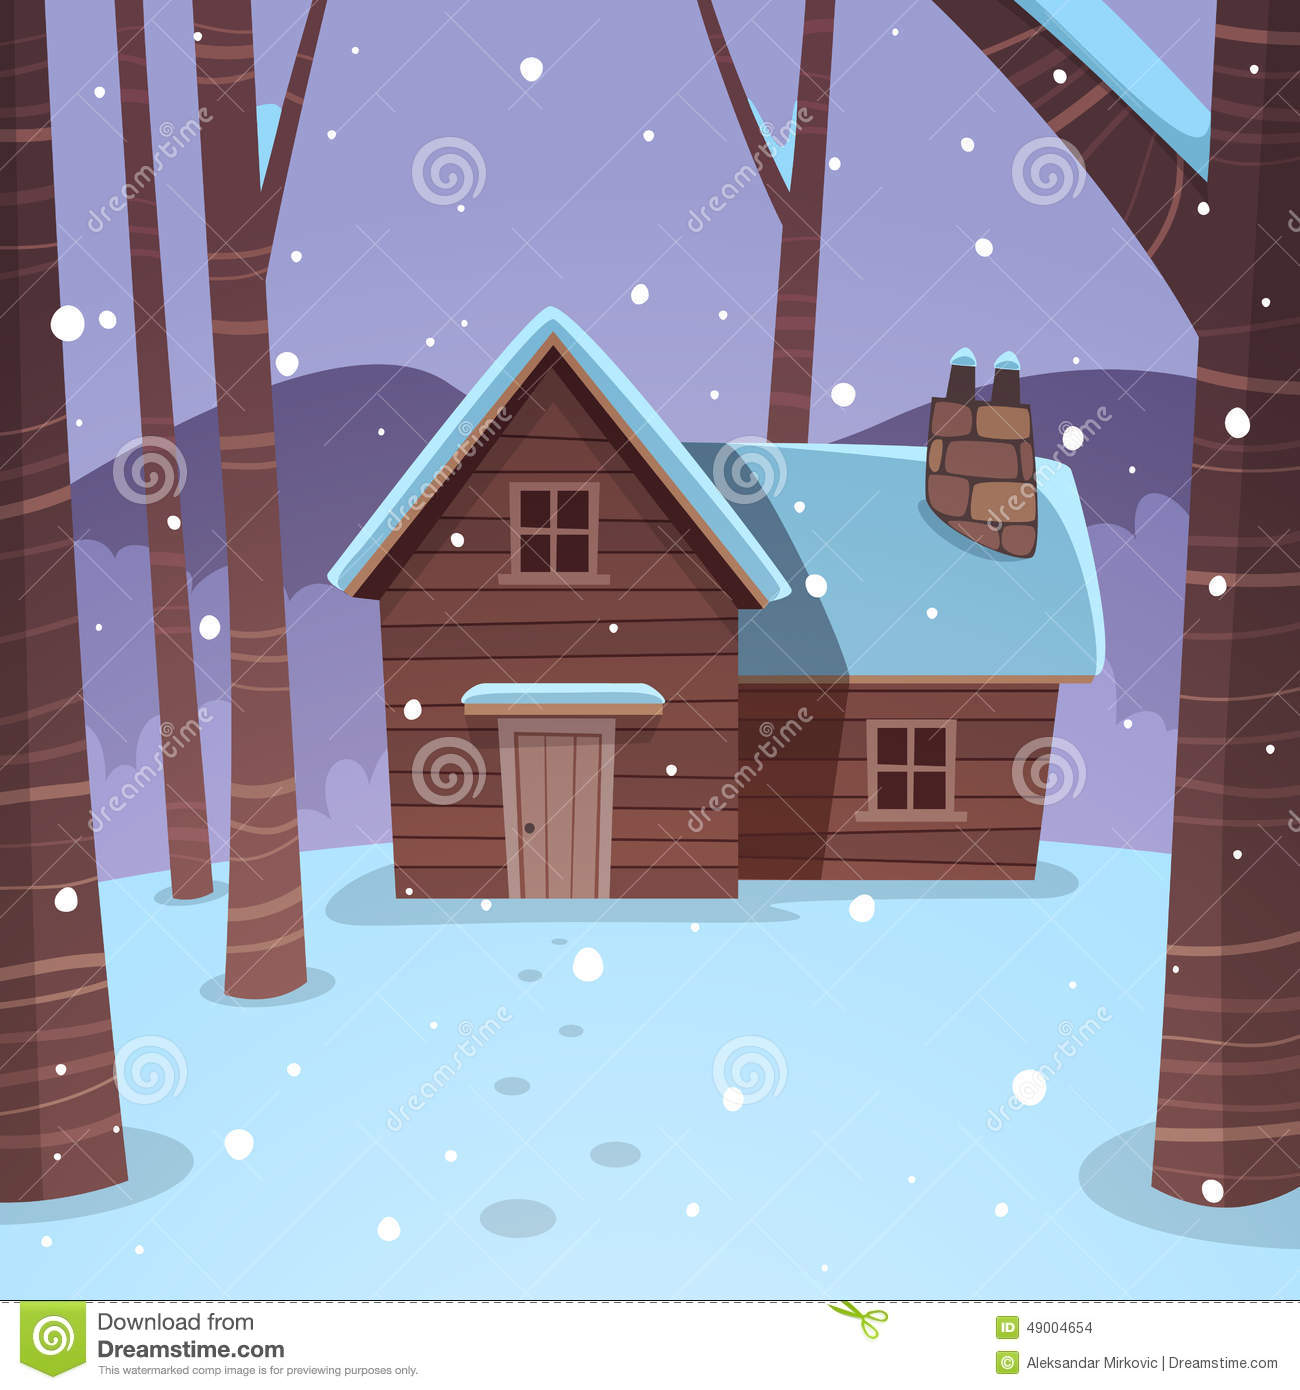 Log cabin in the woods winter - Royalty Free Vector Download Cabin In Woods